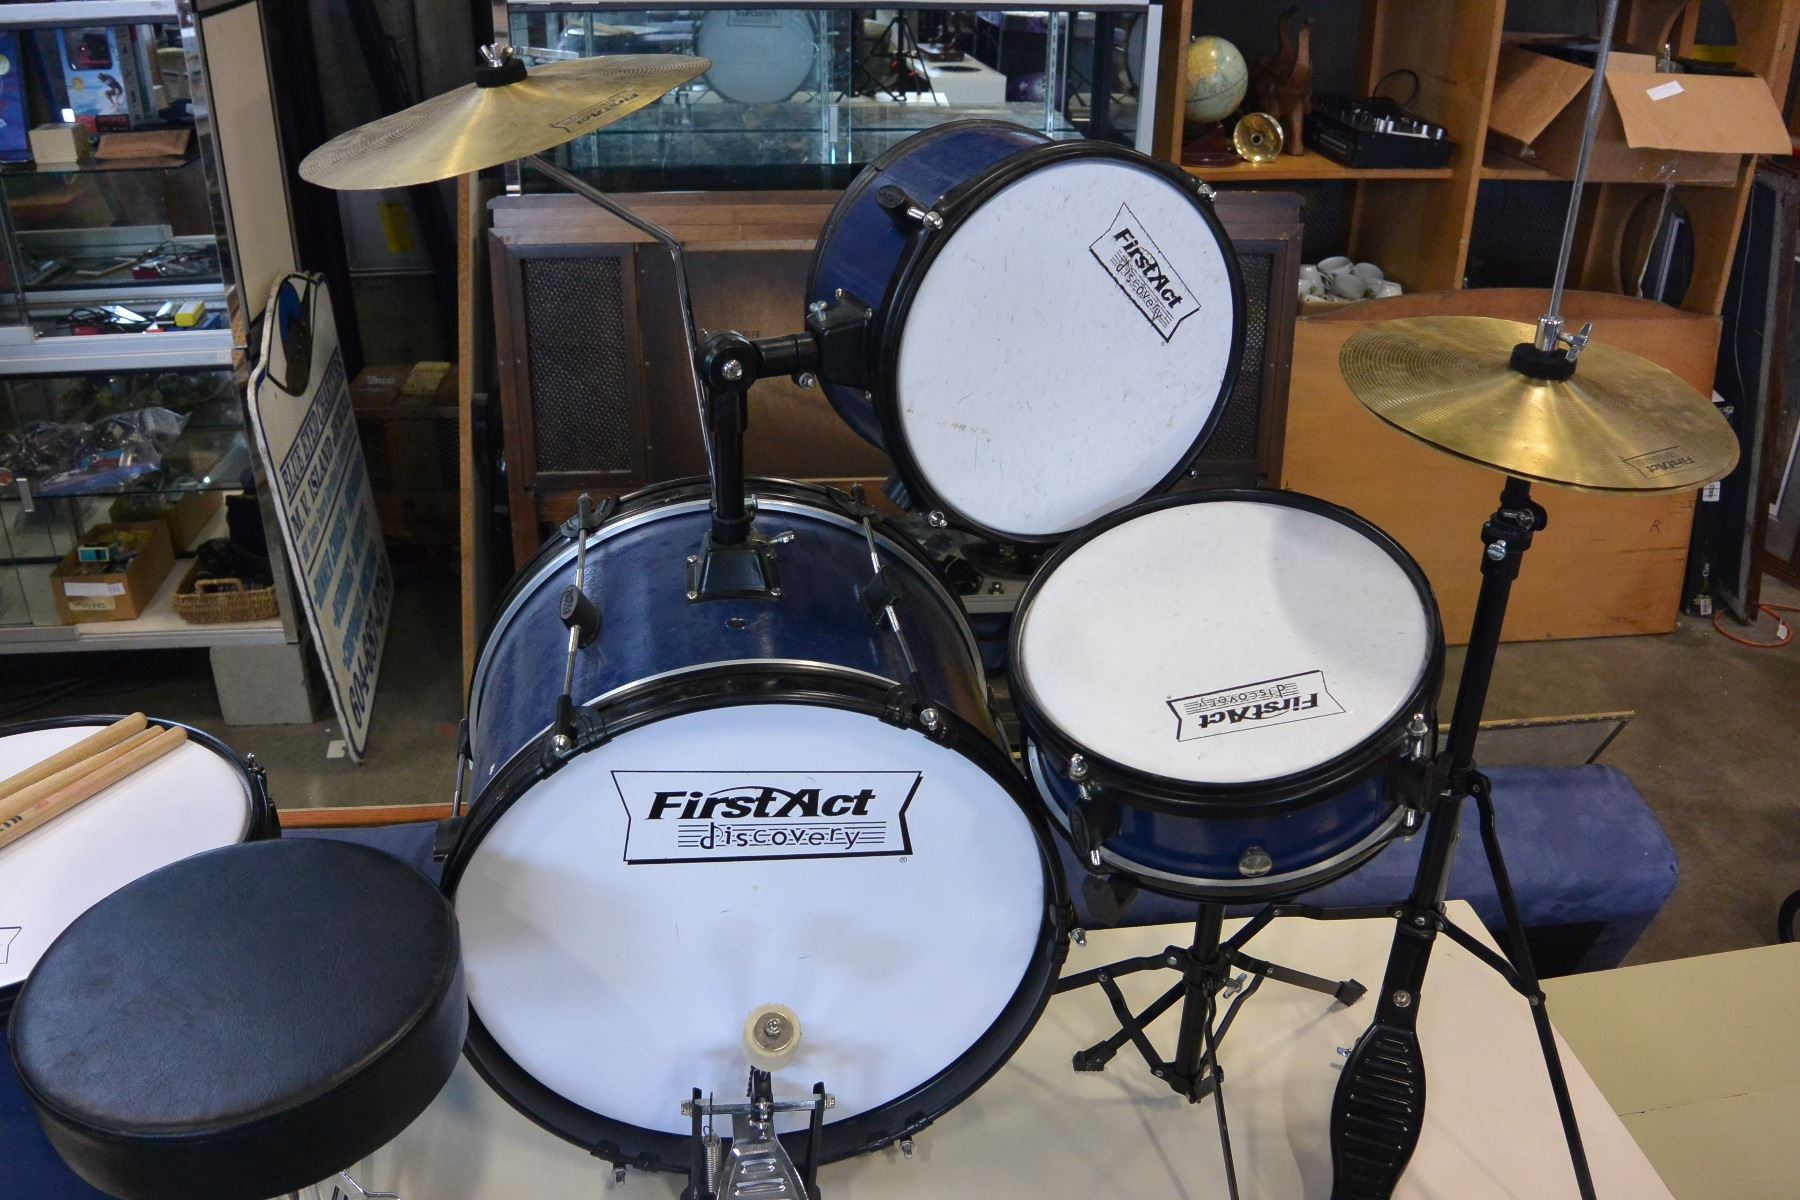 FIRST ACT KIDS DRUM SET WITH STOOL AND DRUMSTICKS     Image 2   FIRST ACT KIDS DRUM SET WITH STOOL AND DRUMSTICKS